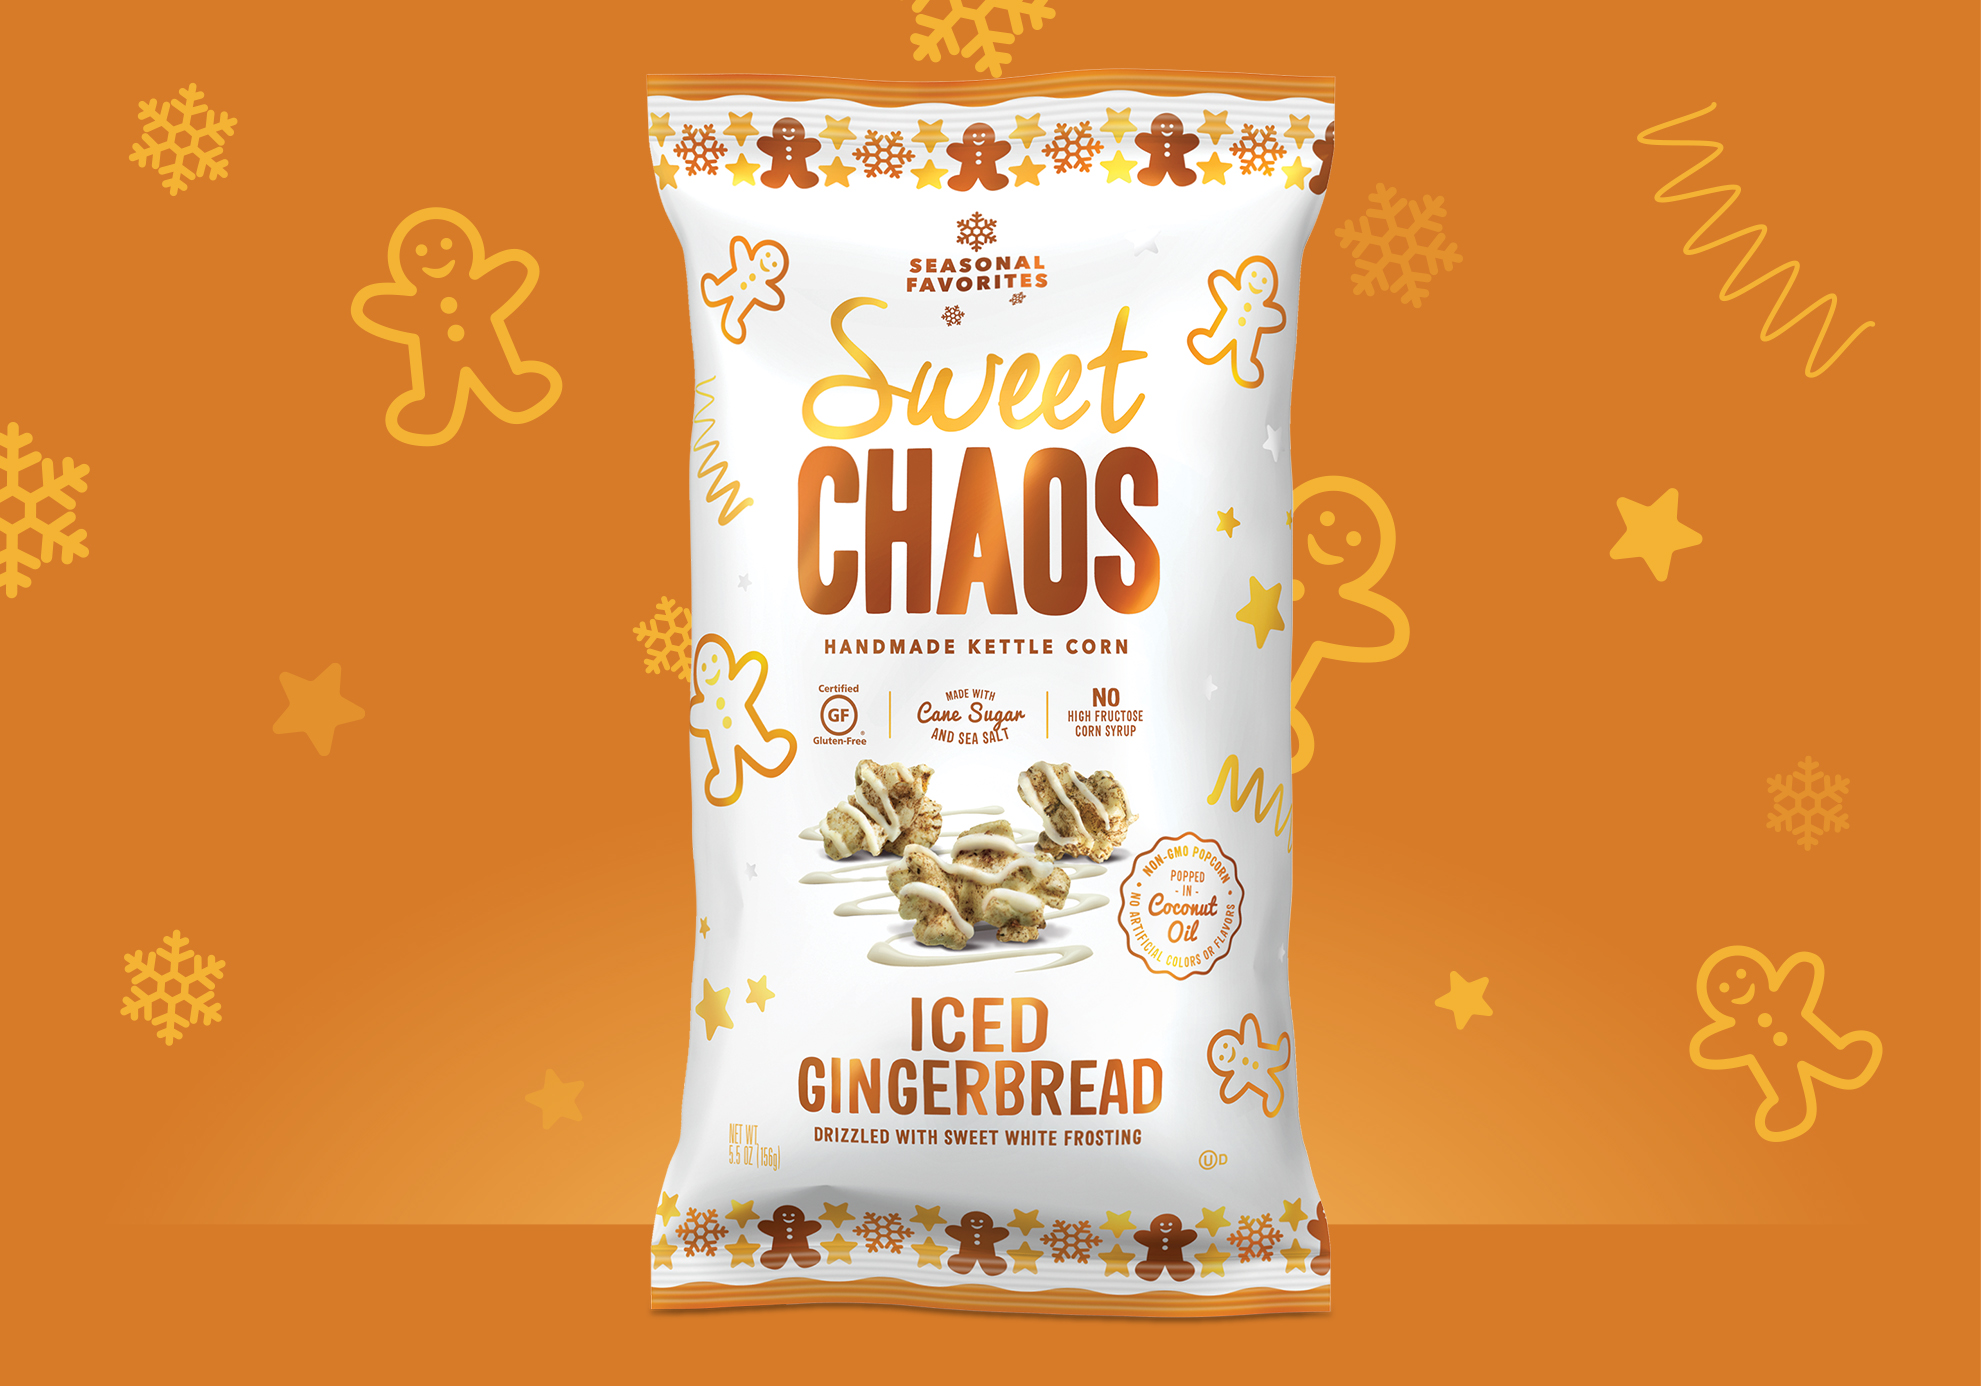 Sweet Chaos Seasonal Popcorn